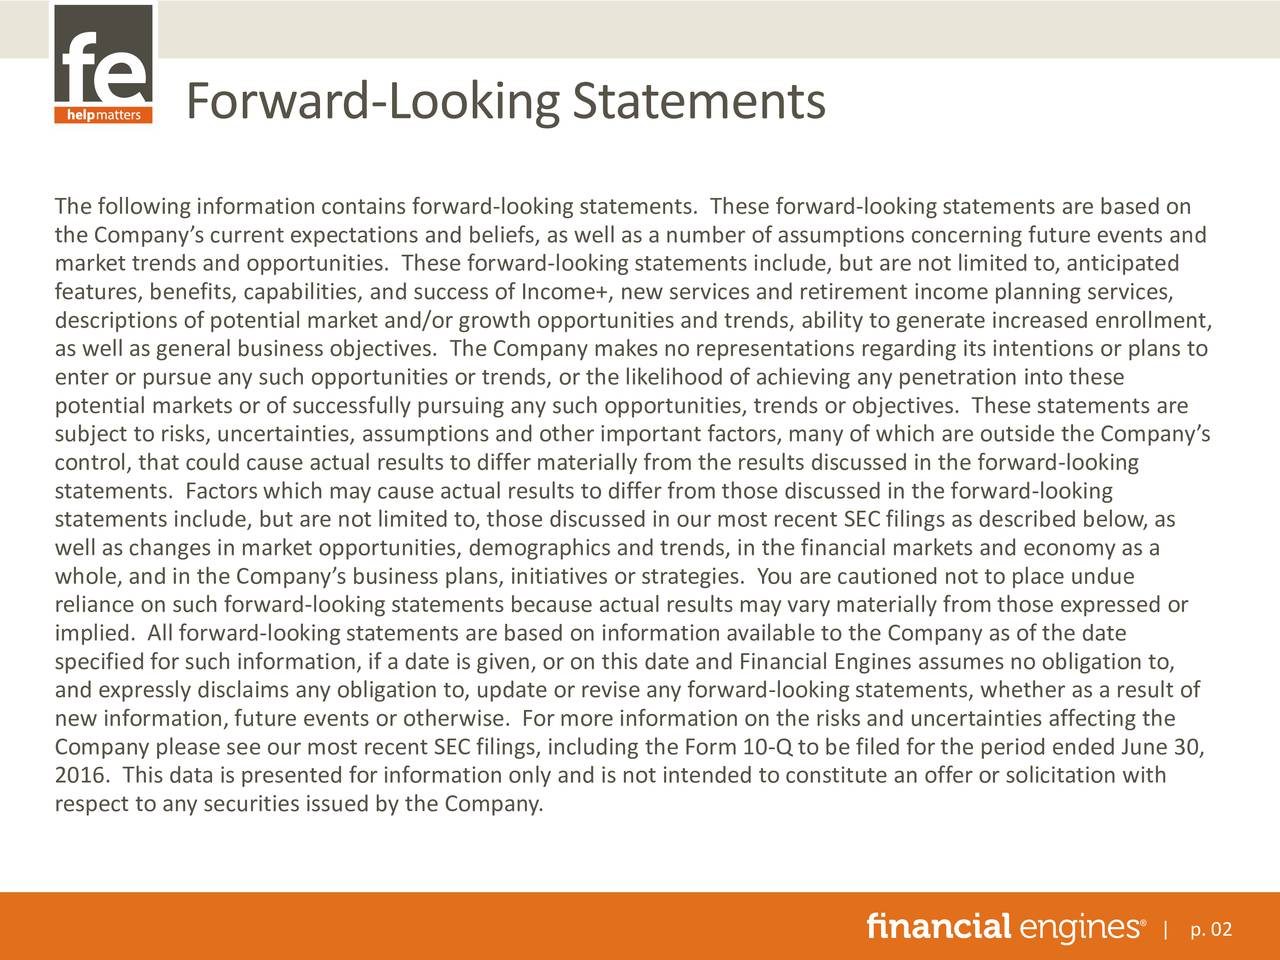 The following information contains forward-looking statements. These forward-lookingstatements are based on the Companys current expectations and beliefs, as well as a number of assumptions concerning future events and market trends and opportunities. These forward-looking statements include, but are not limited to, anticipated features, benefits, capabilities, and success of Income+, new services and retirement income planning services, descriptions of potential market and/or growth opportunities and trends, ability to generate increased enrollment, as well as general business objectives. The Company makes no representations regarding its intentions or plans to enter or pursue any such opportunities or trends, or the likelihood of achieving any penetration into these potential markets or of successfully pursuing any such opportunities, trends or objectives. These statements are subject to risks, uncertainties, assumptions and other important factors, many of which are outside the Companys control, that could cause actual results to differ materially from the results discussed in the forward-looking statements. Factors which may cause actual results to differ from those discussed in the forward-looking statements include, but are not limited to, those discussed in our most recent SEC filings as described below, as well as changes in market opportunities, demographics and trends, in the financial markets and economy as a whole, and in the Companys business plans, initiatives or strategies. You are cautioned not to place undue reliance on such forward-looking statements because actual results may vary materially from those expressed or implied. All forward-looking statements are based on information available to the Company as of the date specified for such information, if a date is given, or on this date and Financial Engines assumes no obligation to, and expressly disclaims any obligation to, update or revise any forward-looking statements, whether as a result of ne